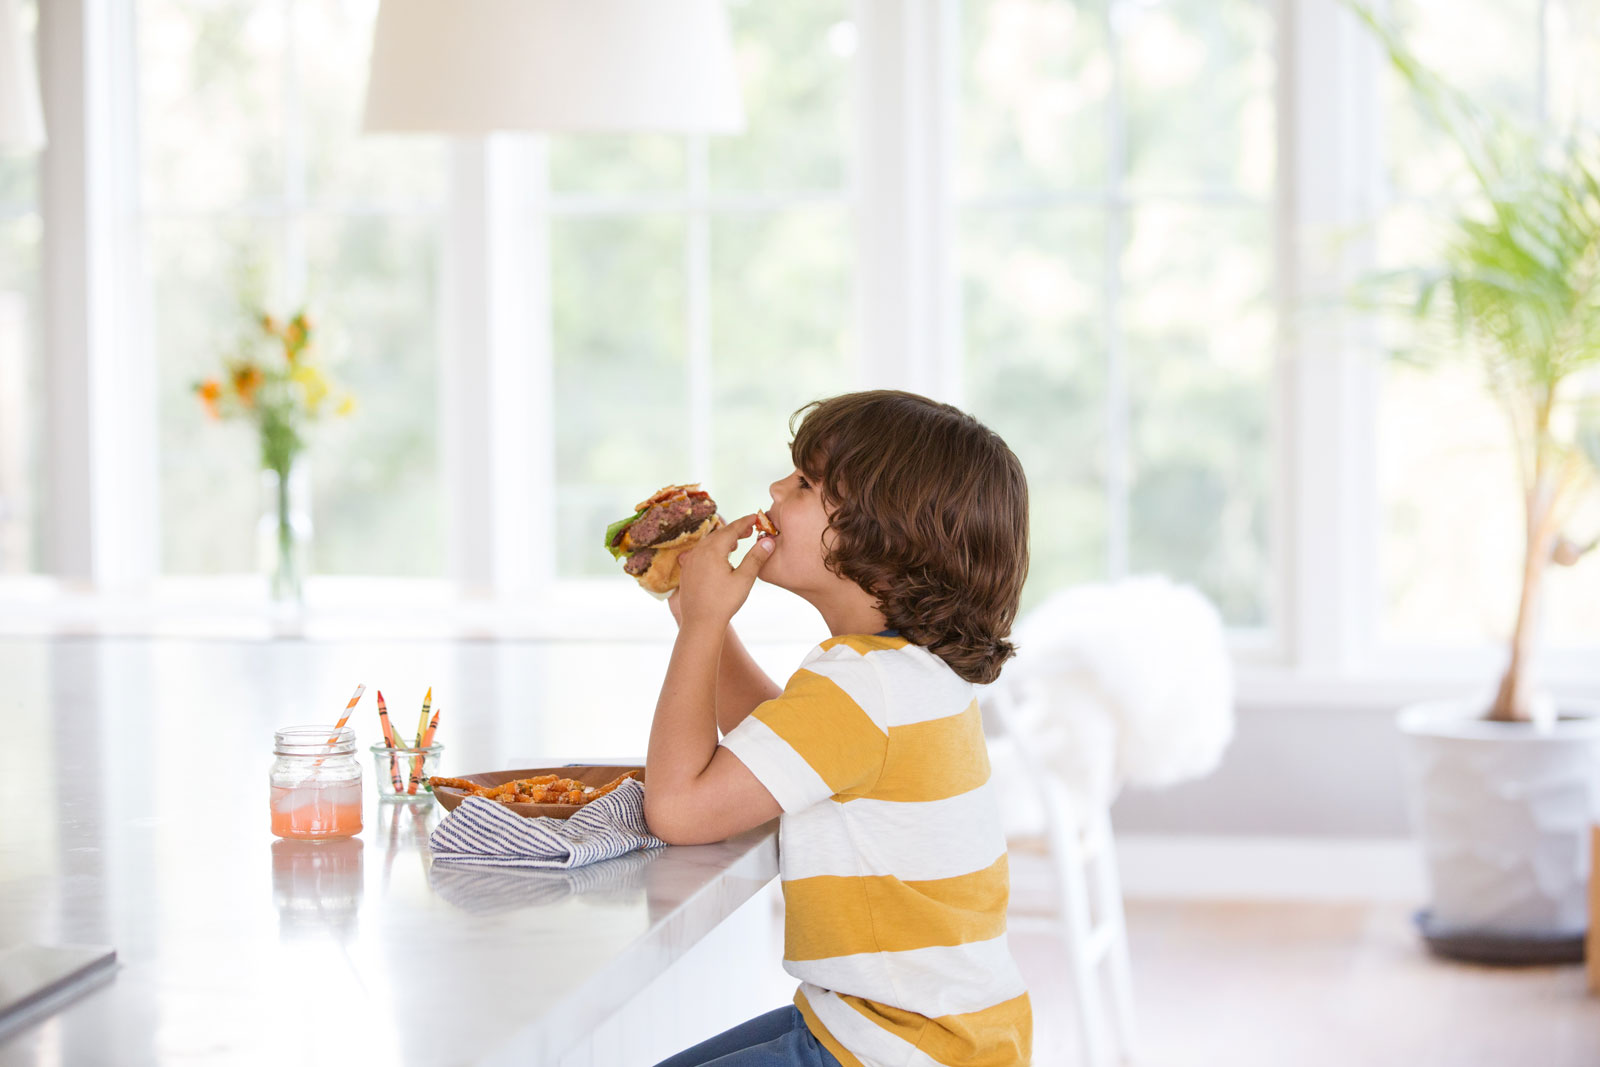 Lifestyle Food Image of Boy eating  | Trinette+Chris Photographers